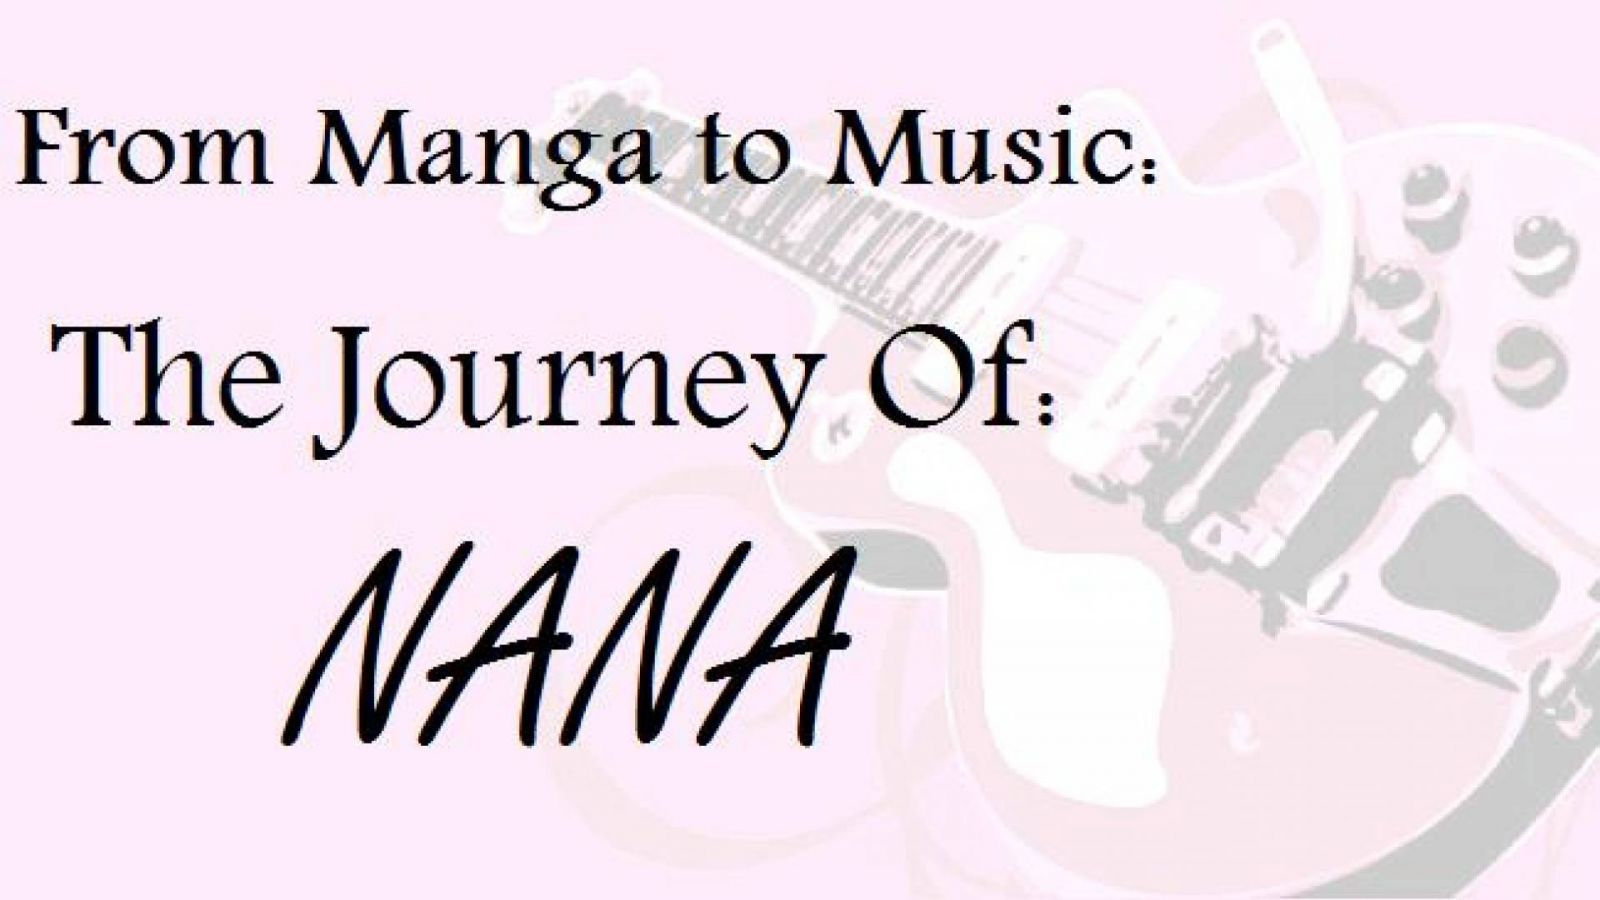 From Manga to Music: The Journey of NANA © JaME